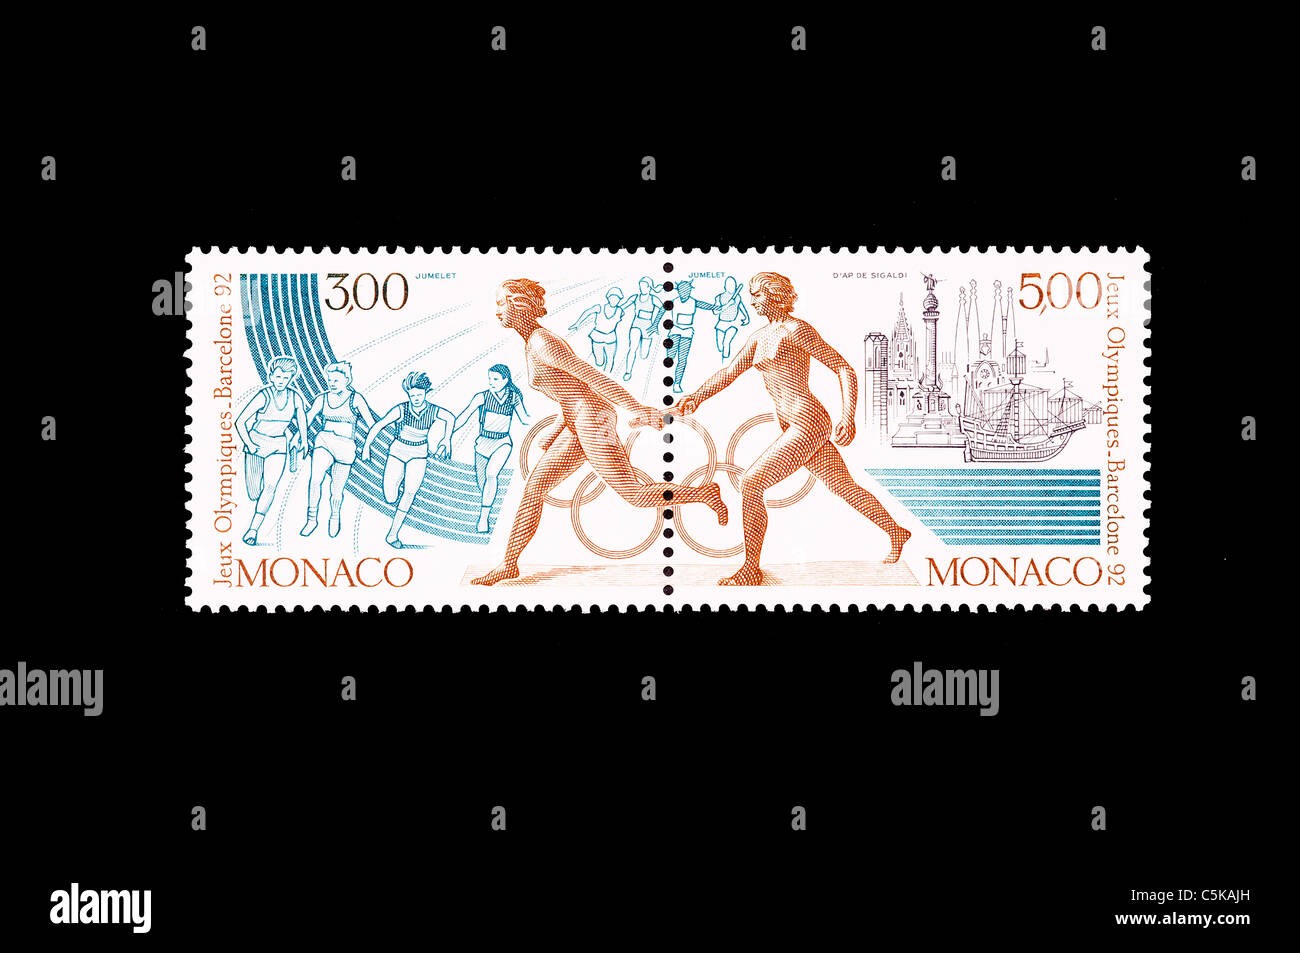 the relay race discipline in a commemorative stamp of olimpic games of Barcelona 1992 - Stock Image